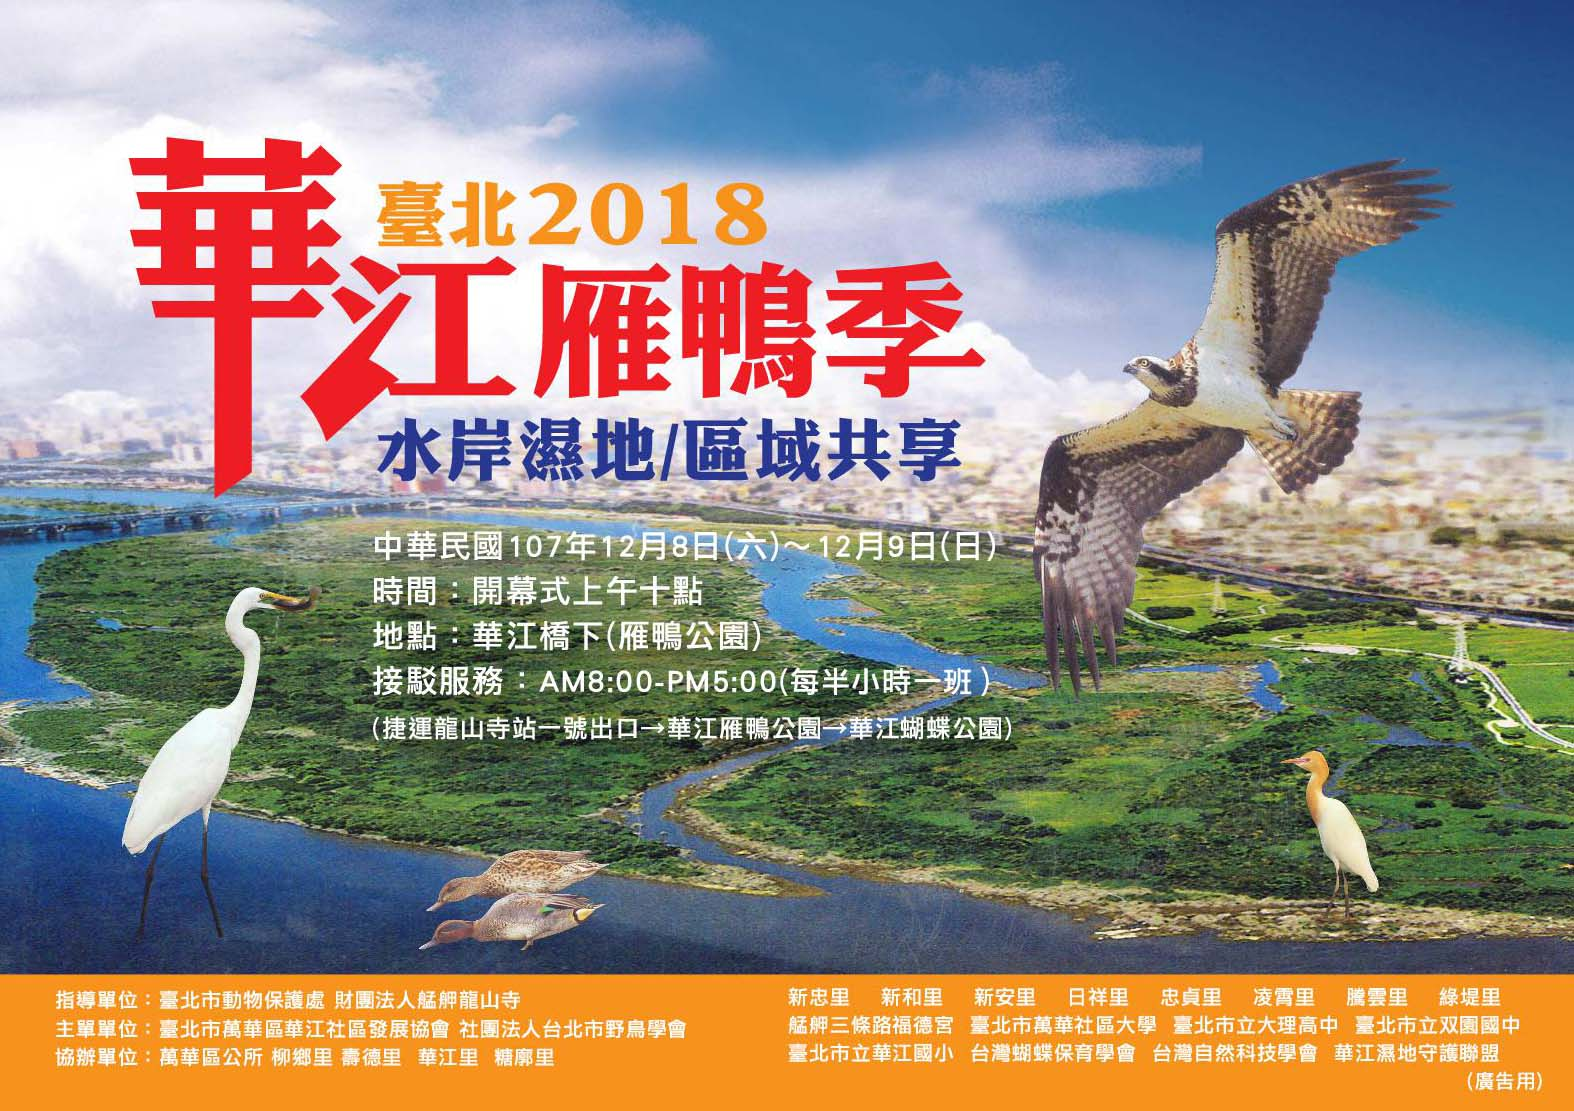 Welcoming the Waterfowl Season at Huajiang Nature Park